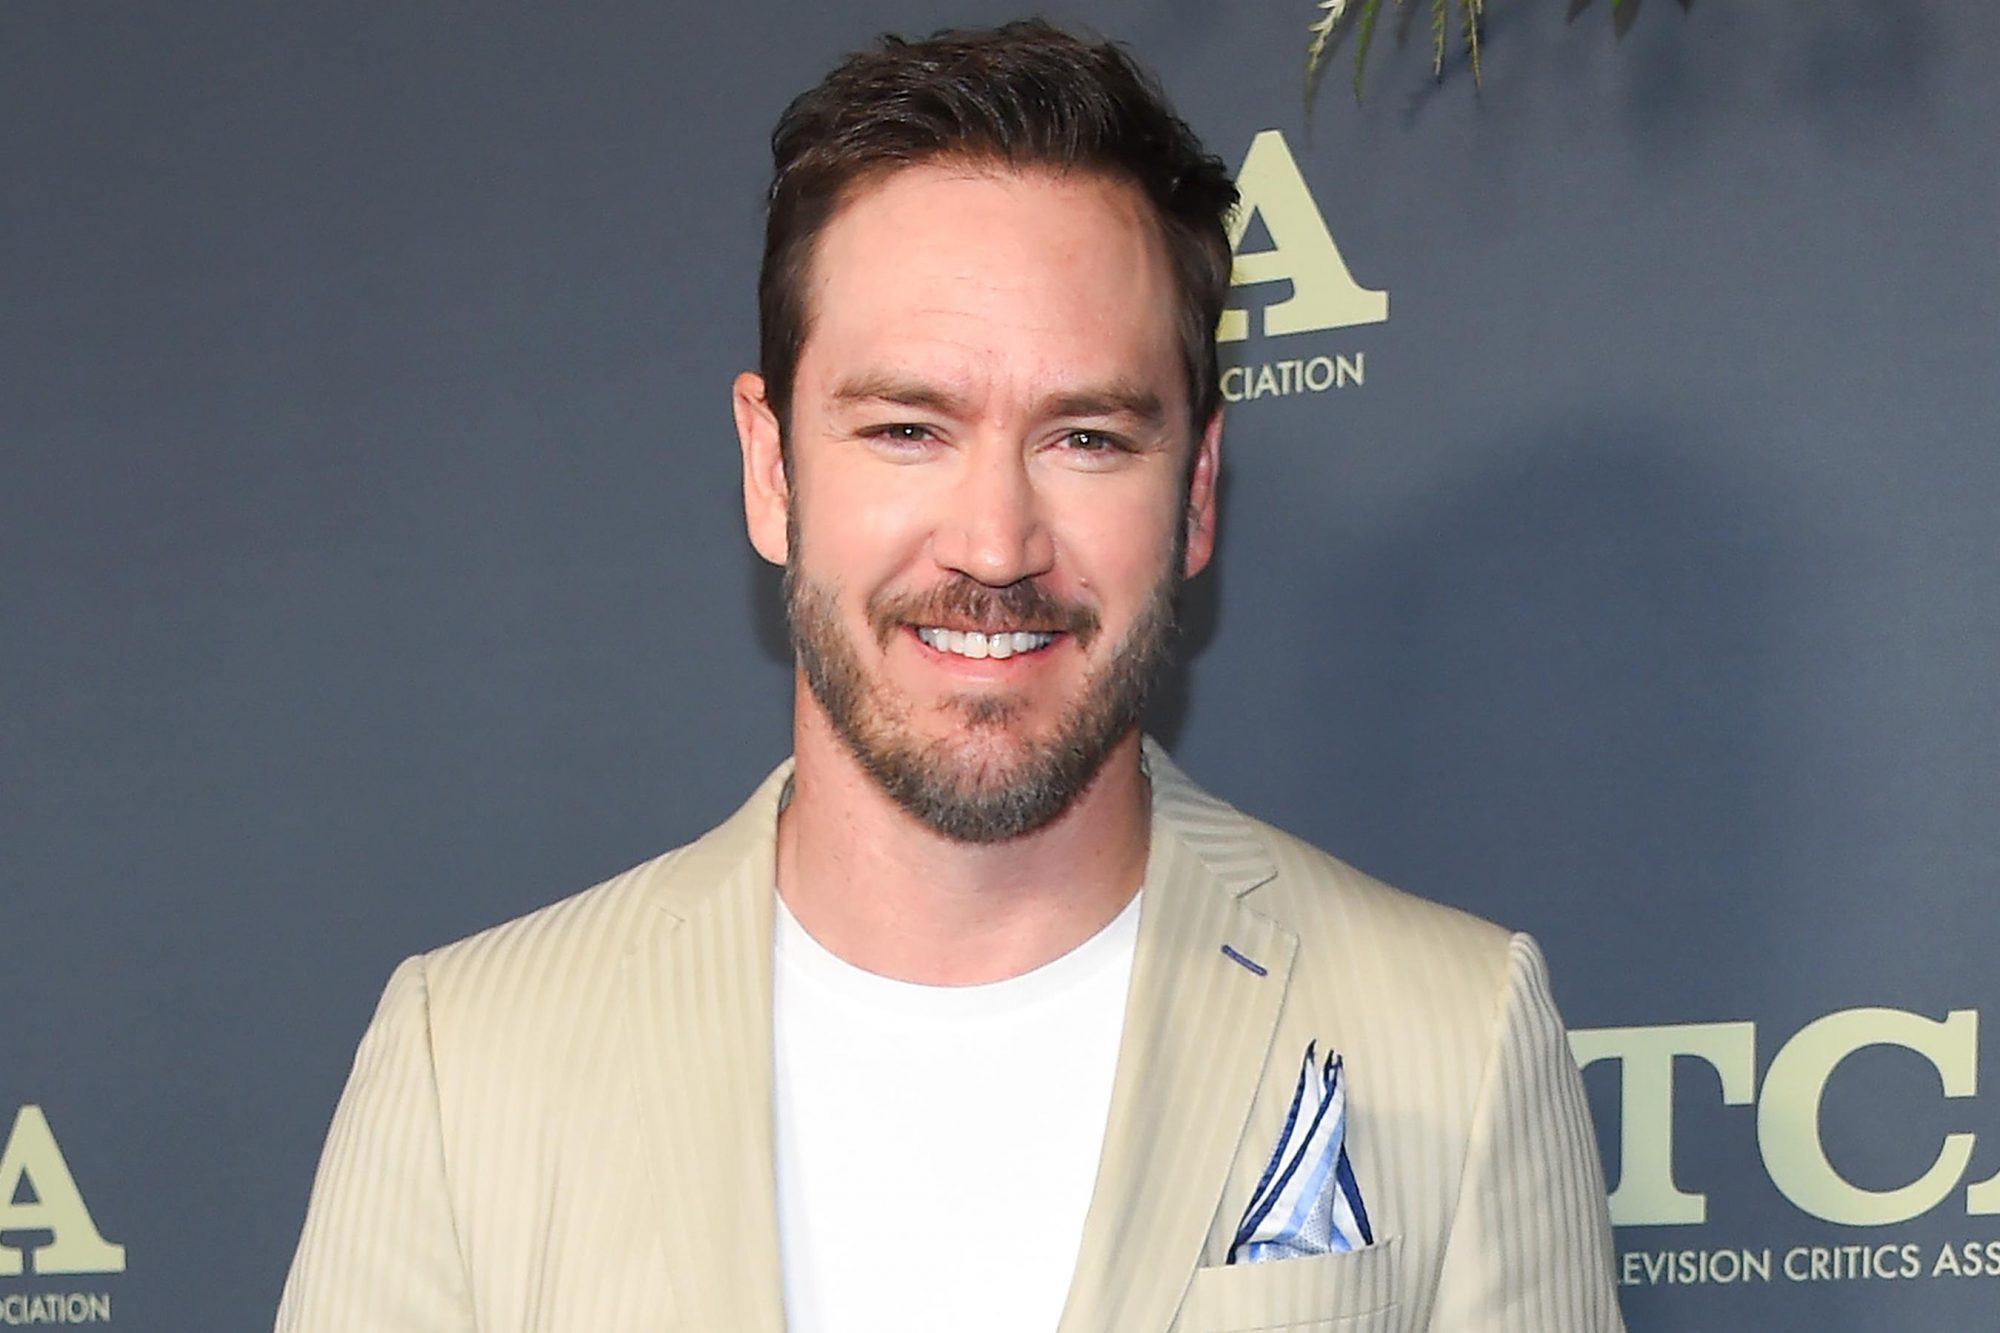 Actor Mark-Paul Gosselaar arrives at the FOX Winter TCA All-Star Party 2019 at The Fig House in Los Angeles, on February 6, 2019. (Photo by LISA O'CONNOR / AFP) (Photo credit should read LISA O'CONNOR/AFP/Getty Images)